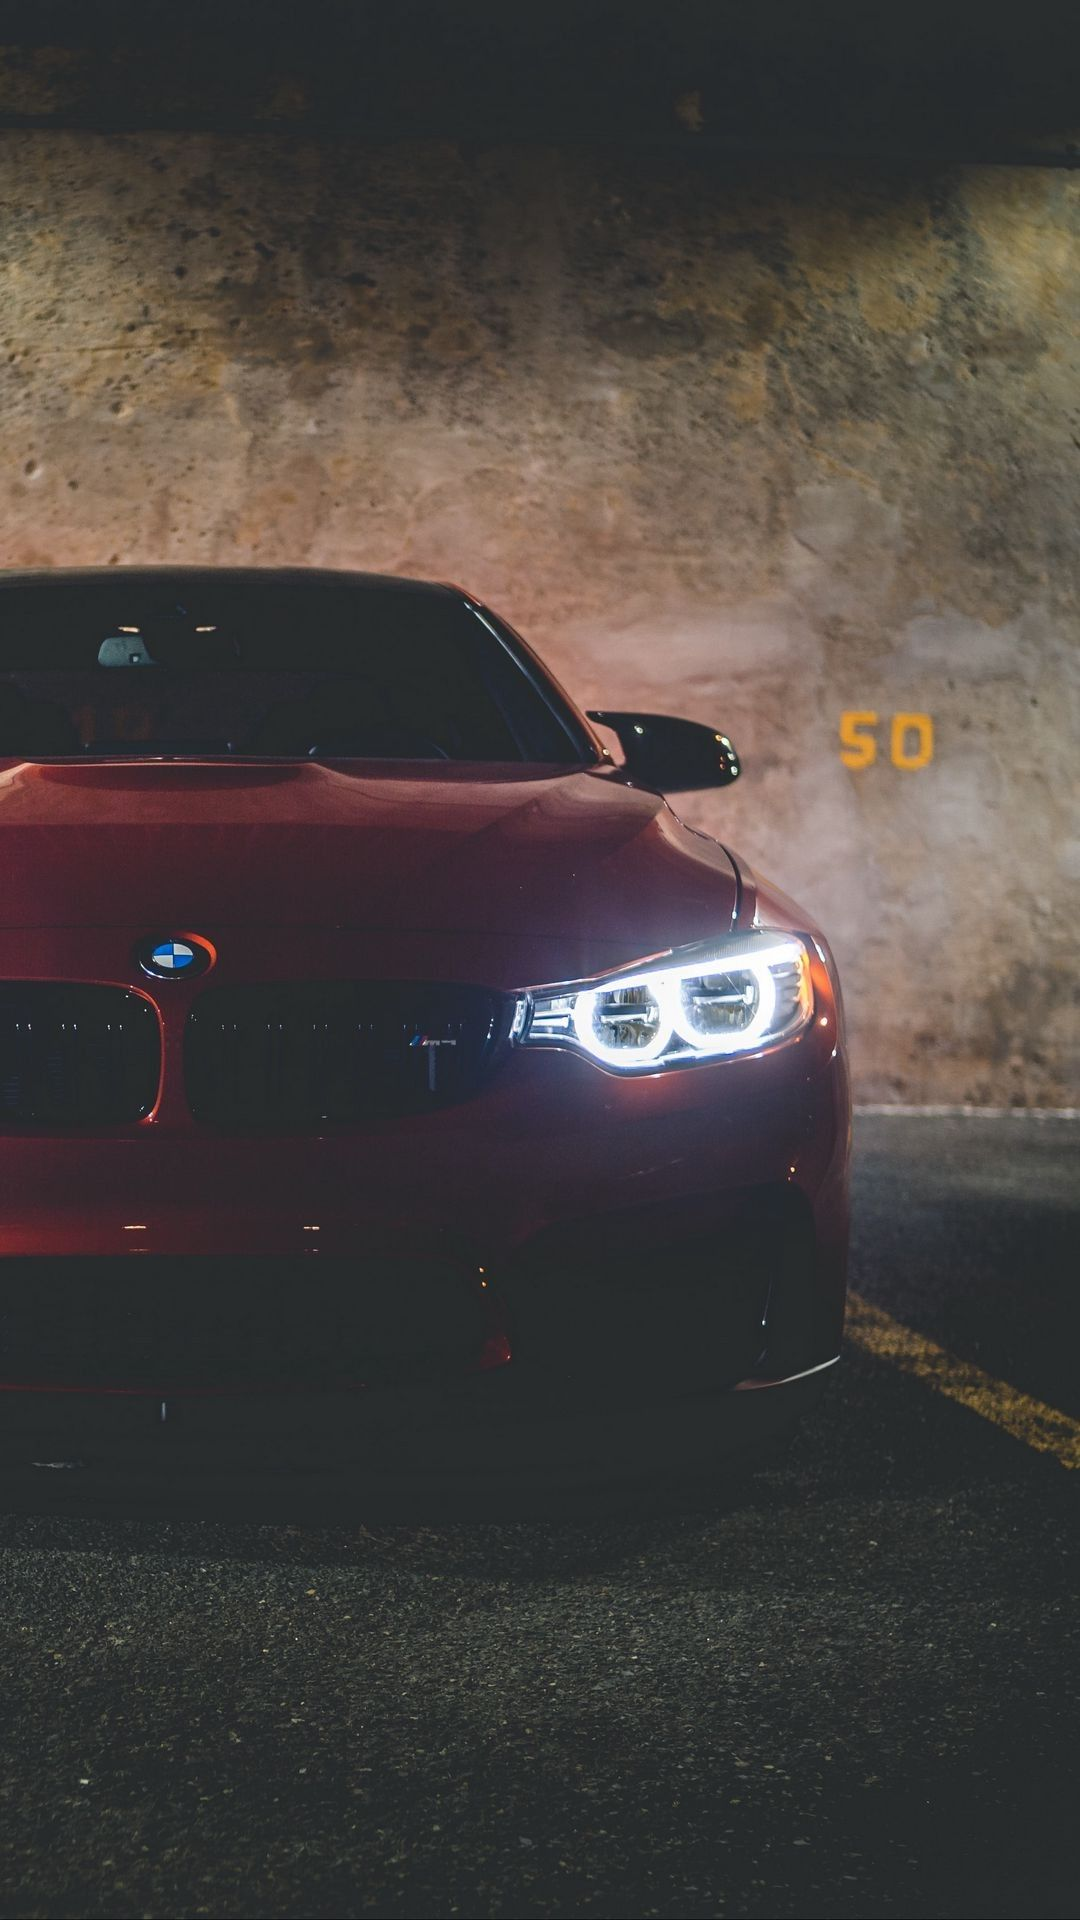 Cars Mobile Full Hd Wallpapers 1080x1920 In 2021 Sports Car Wallpaper Bmw Bmw Wallpapers